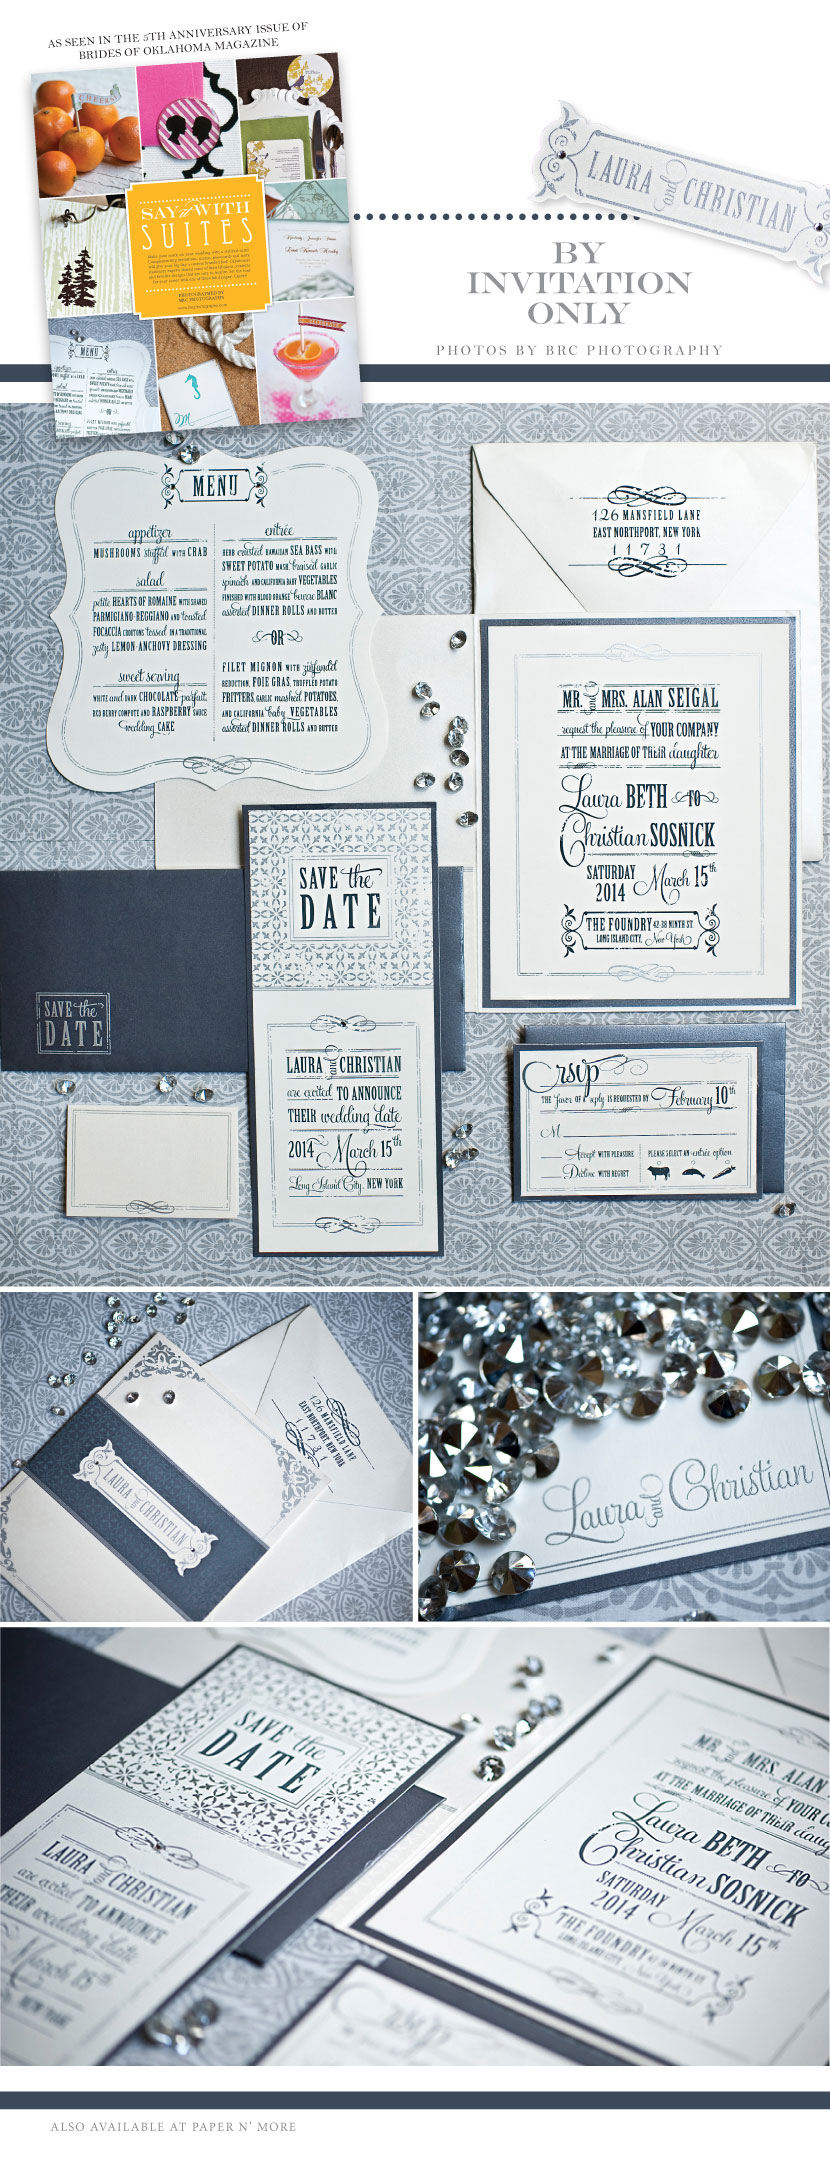 Oklahoma wedding invitations from By Invitation Only